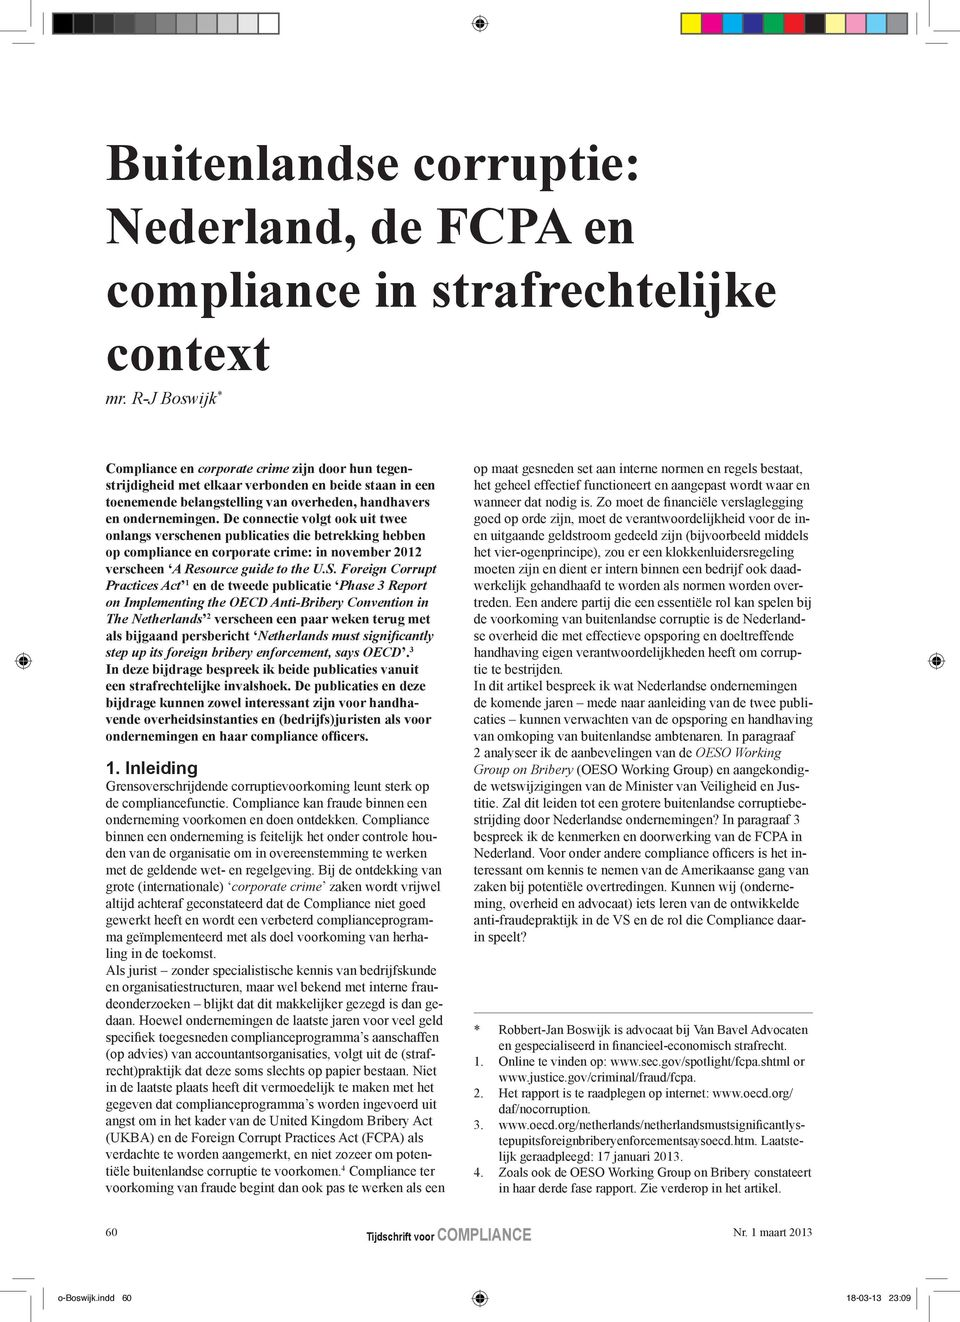 De connectie volgt ook uit twee onlangs verschenen publicaties die betrekking hebben op compliance en corporate crime: in november 2012 verscheen A Resource guide to the U.S.